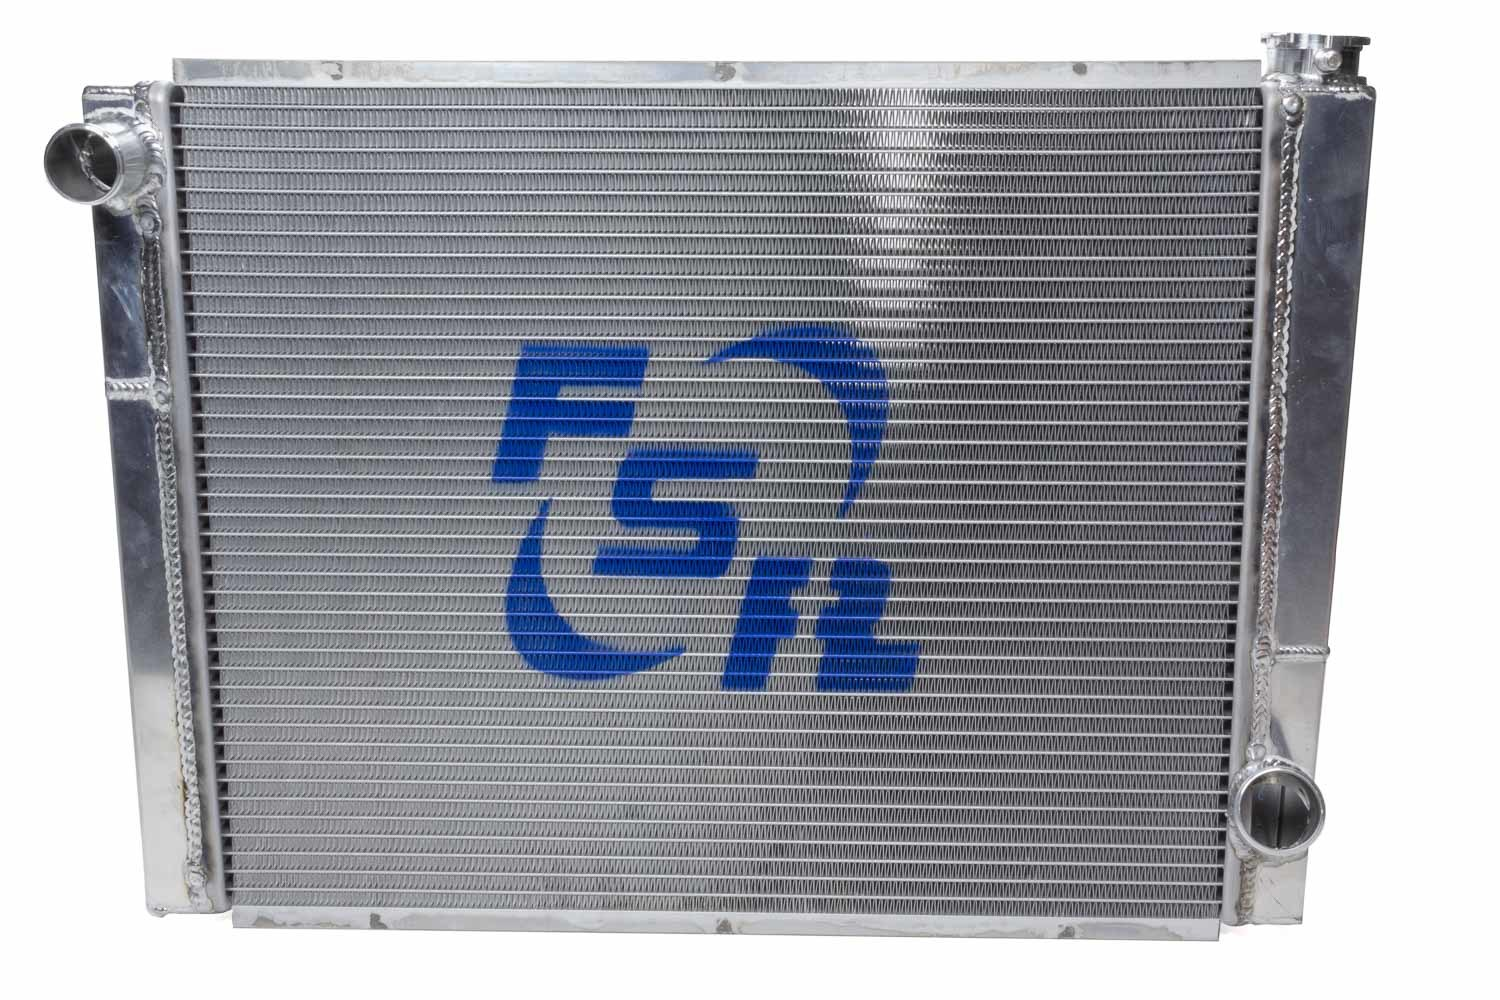 FSR Racing 2619T2 Radiator, 26 in W x 19 in H, Triple Pass, Driver Side Inlet, Passenger Side Outlet, Aluminum, Natural, Each